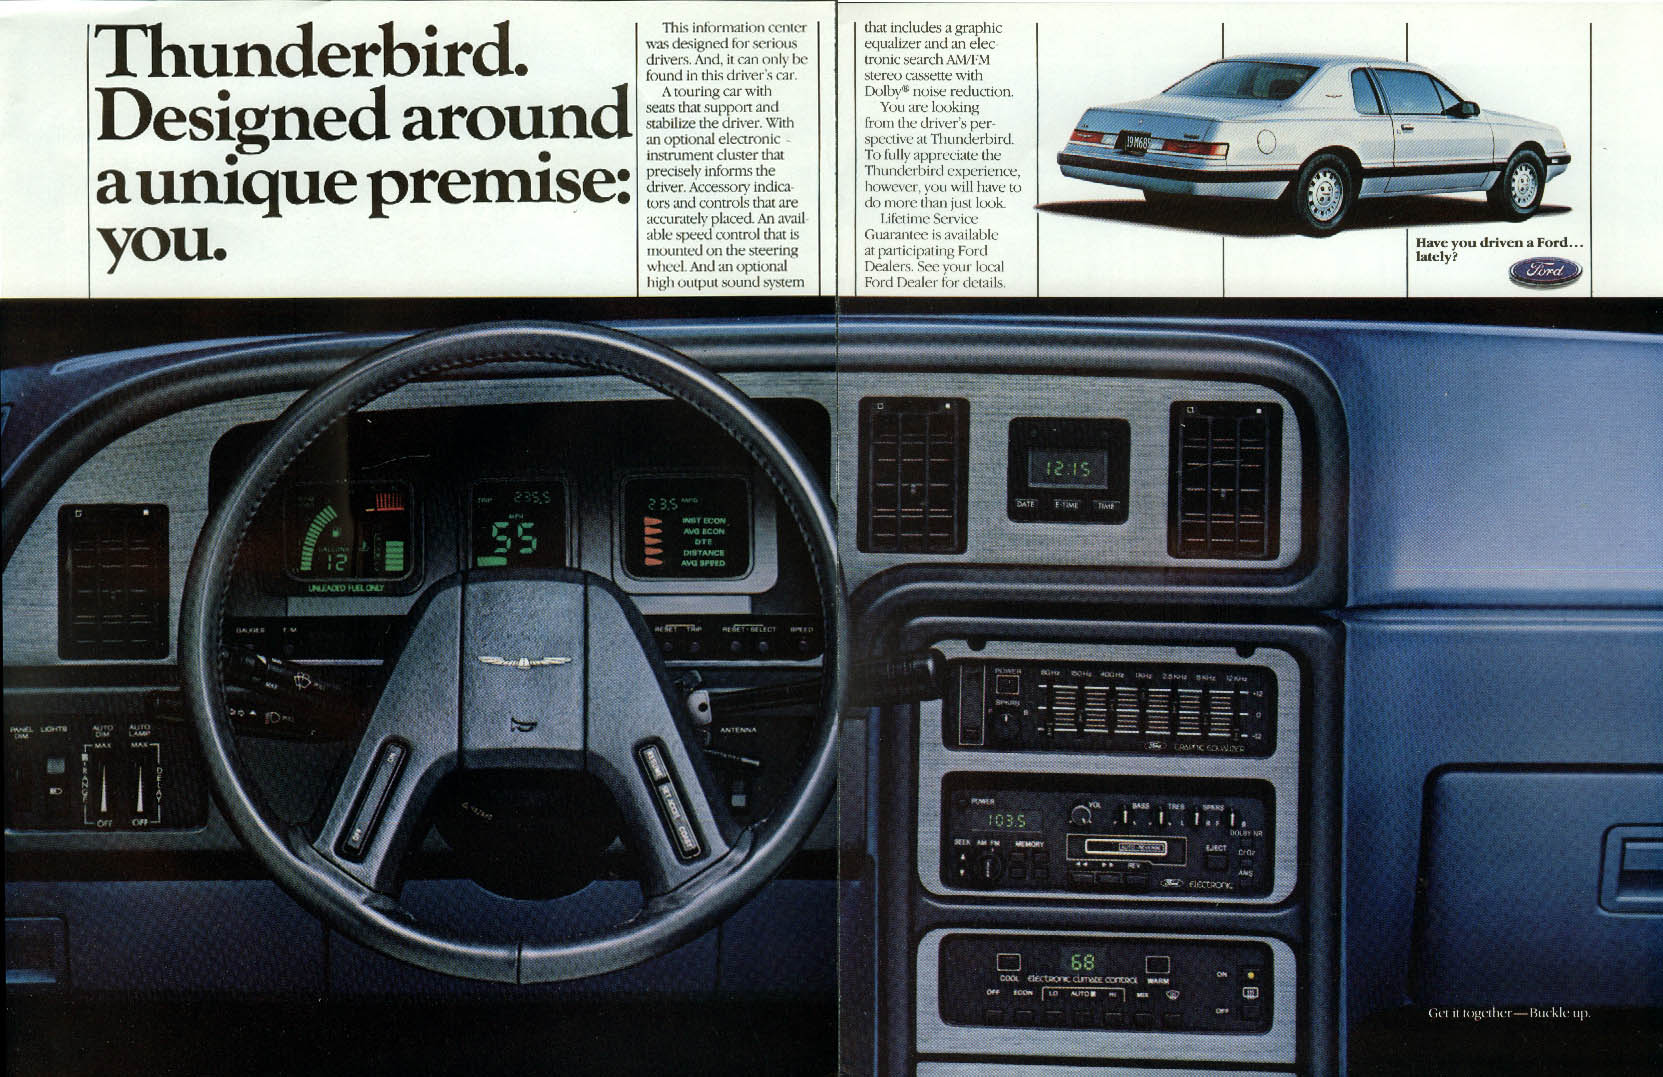 Image for Designed around a unique premise: you. Ford Thunderbird ad 1985